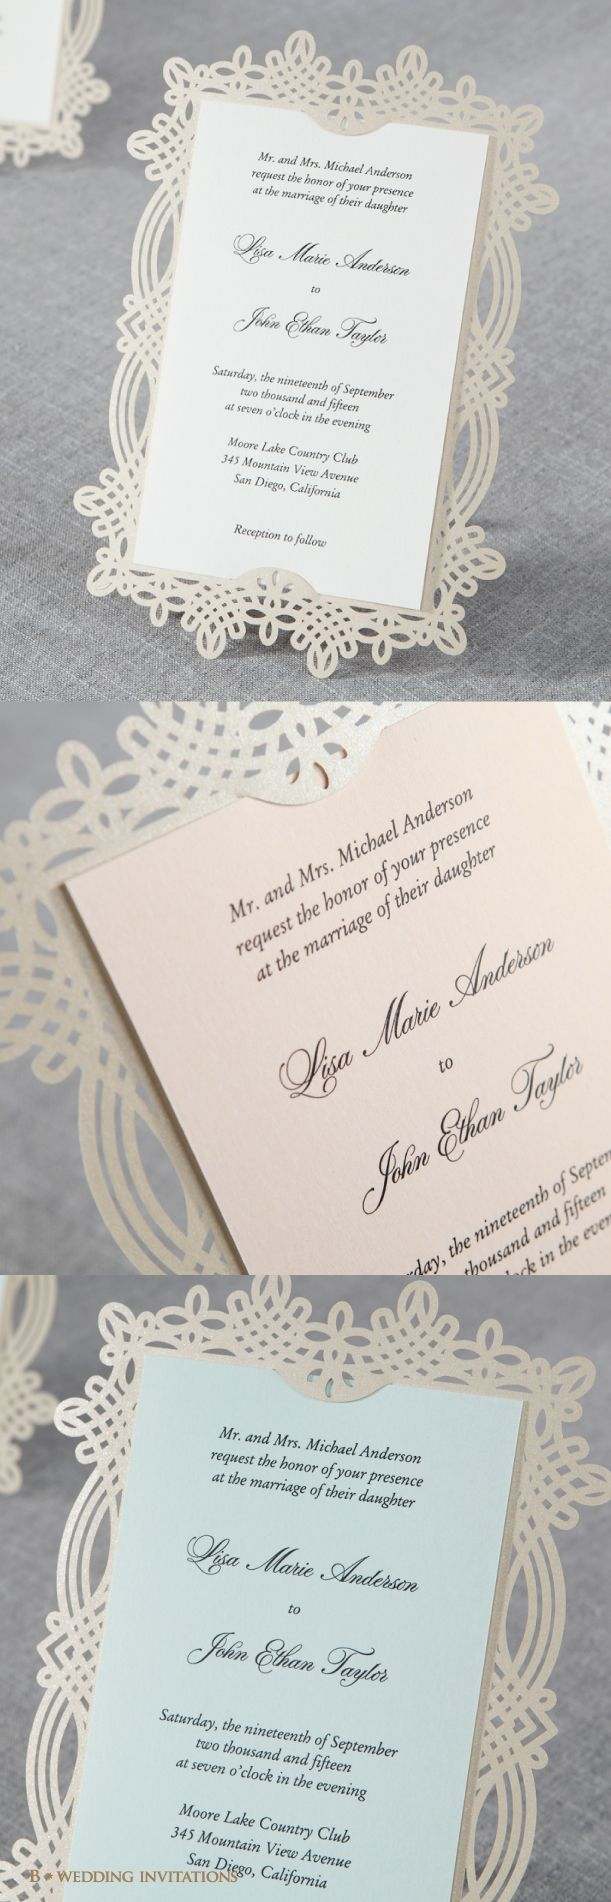 232 Best Invitation Cards Images On Pinterest Invitation Cards